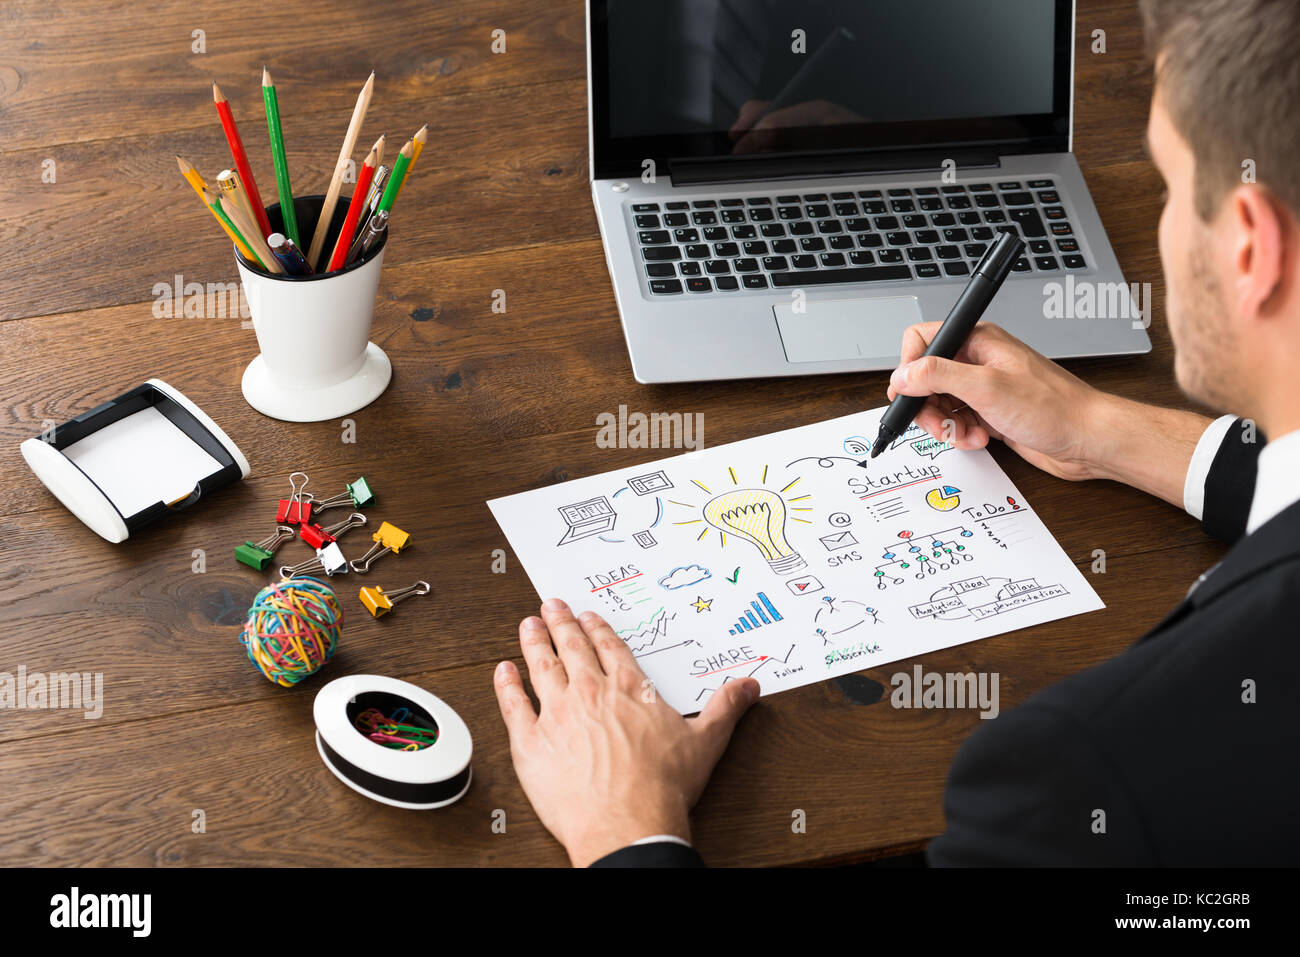 hight resolution of close up of businessman with office supplies and laptop drawing diagram of start up plan at desk